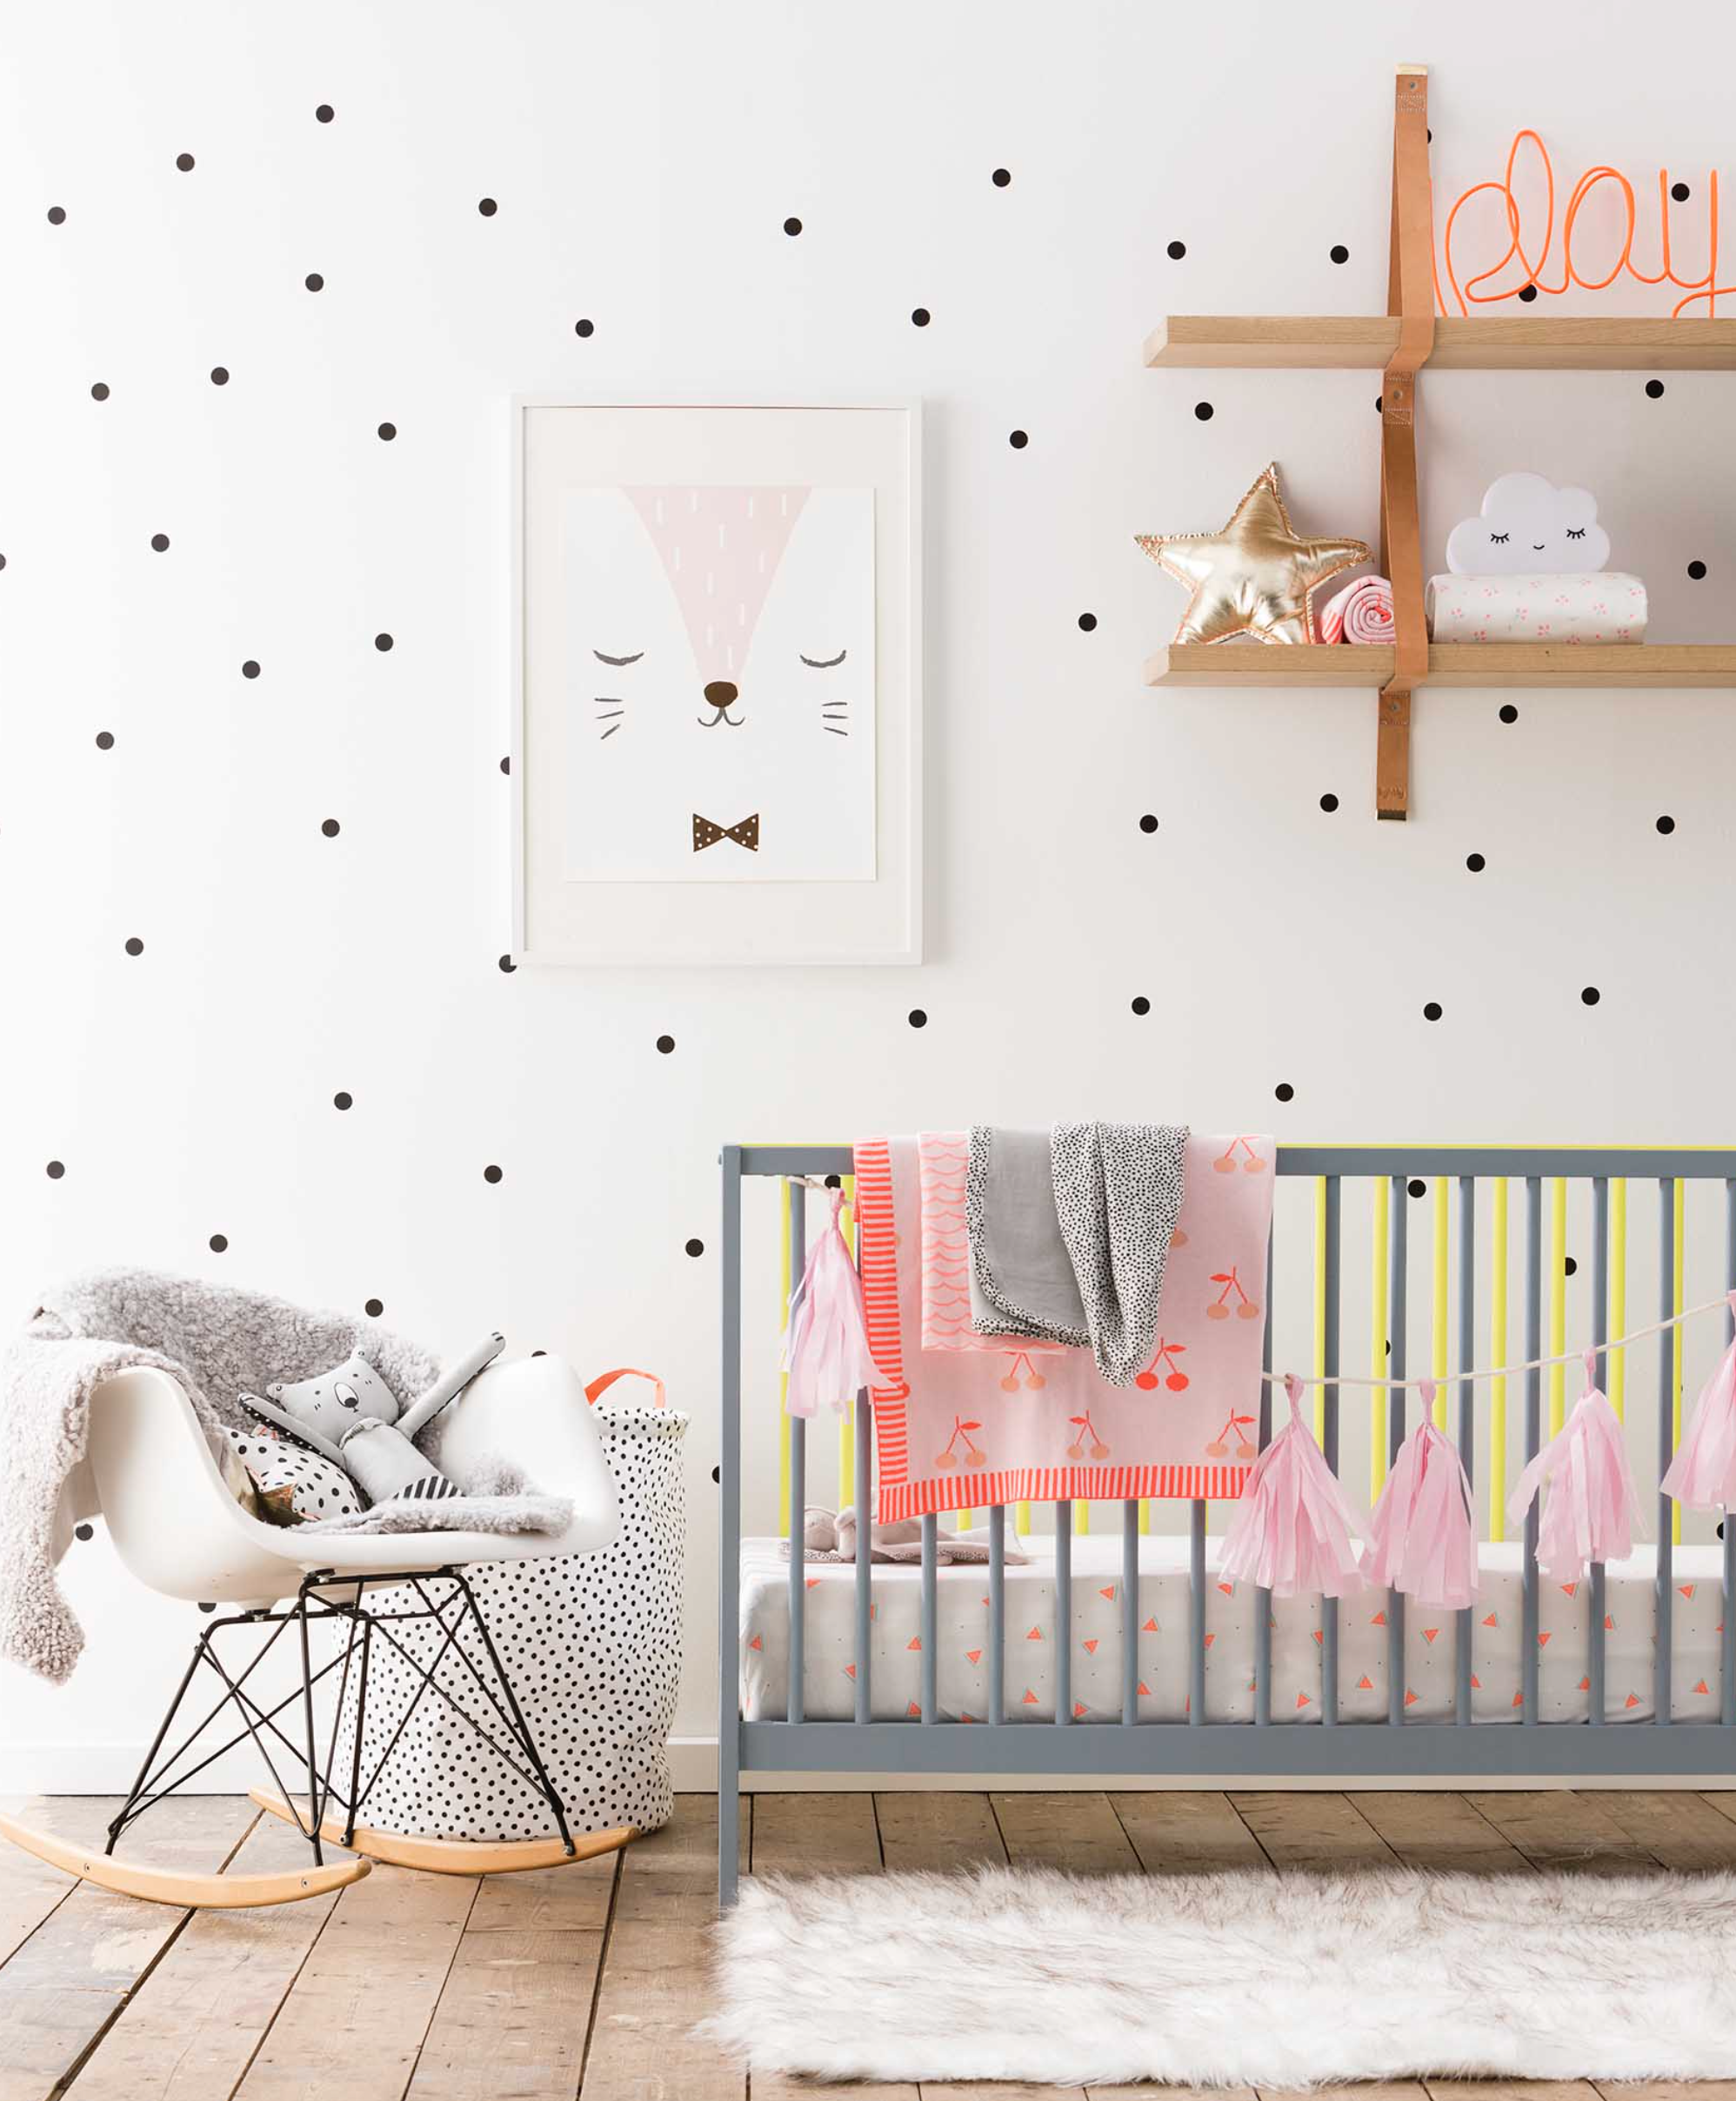 How To Have Fun With Polka Dot Decor | DIY Projects|Homesthetics ...